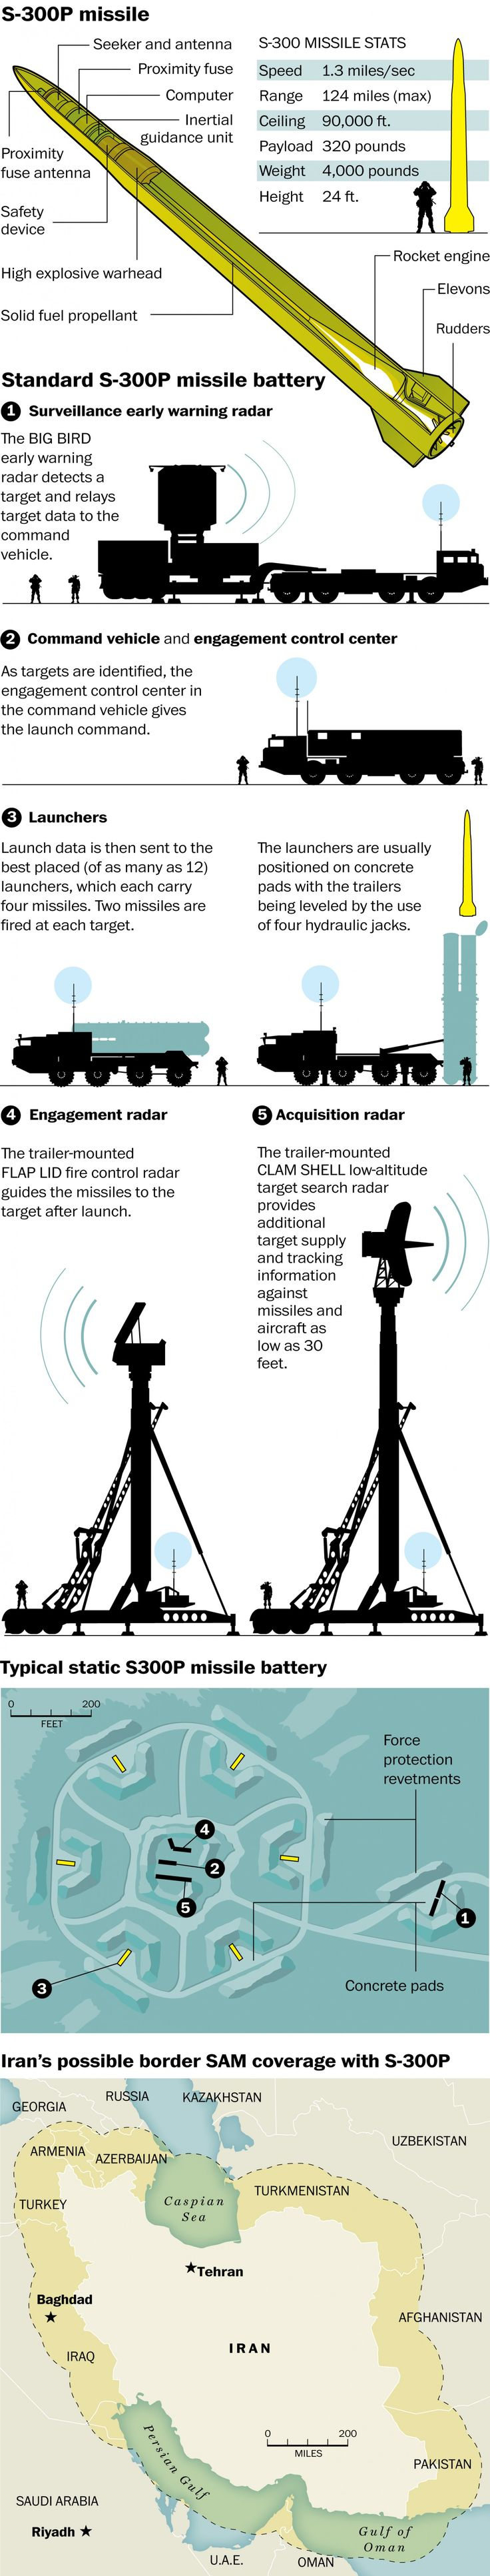 Russia's 'Patriot' missiles to Iran - The Washington Post